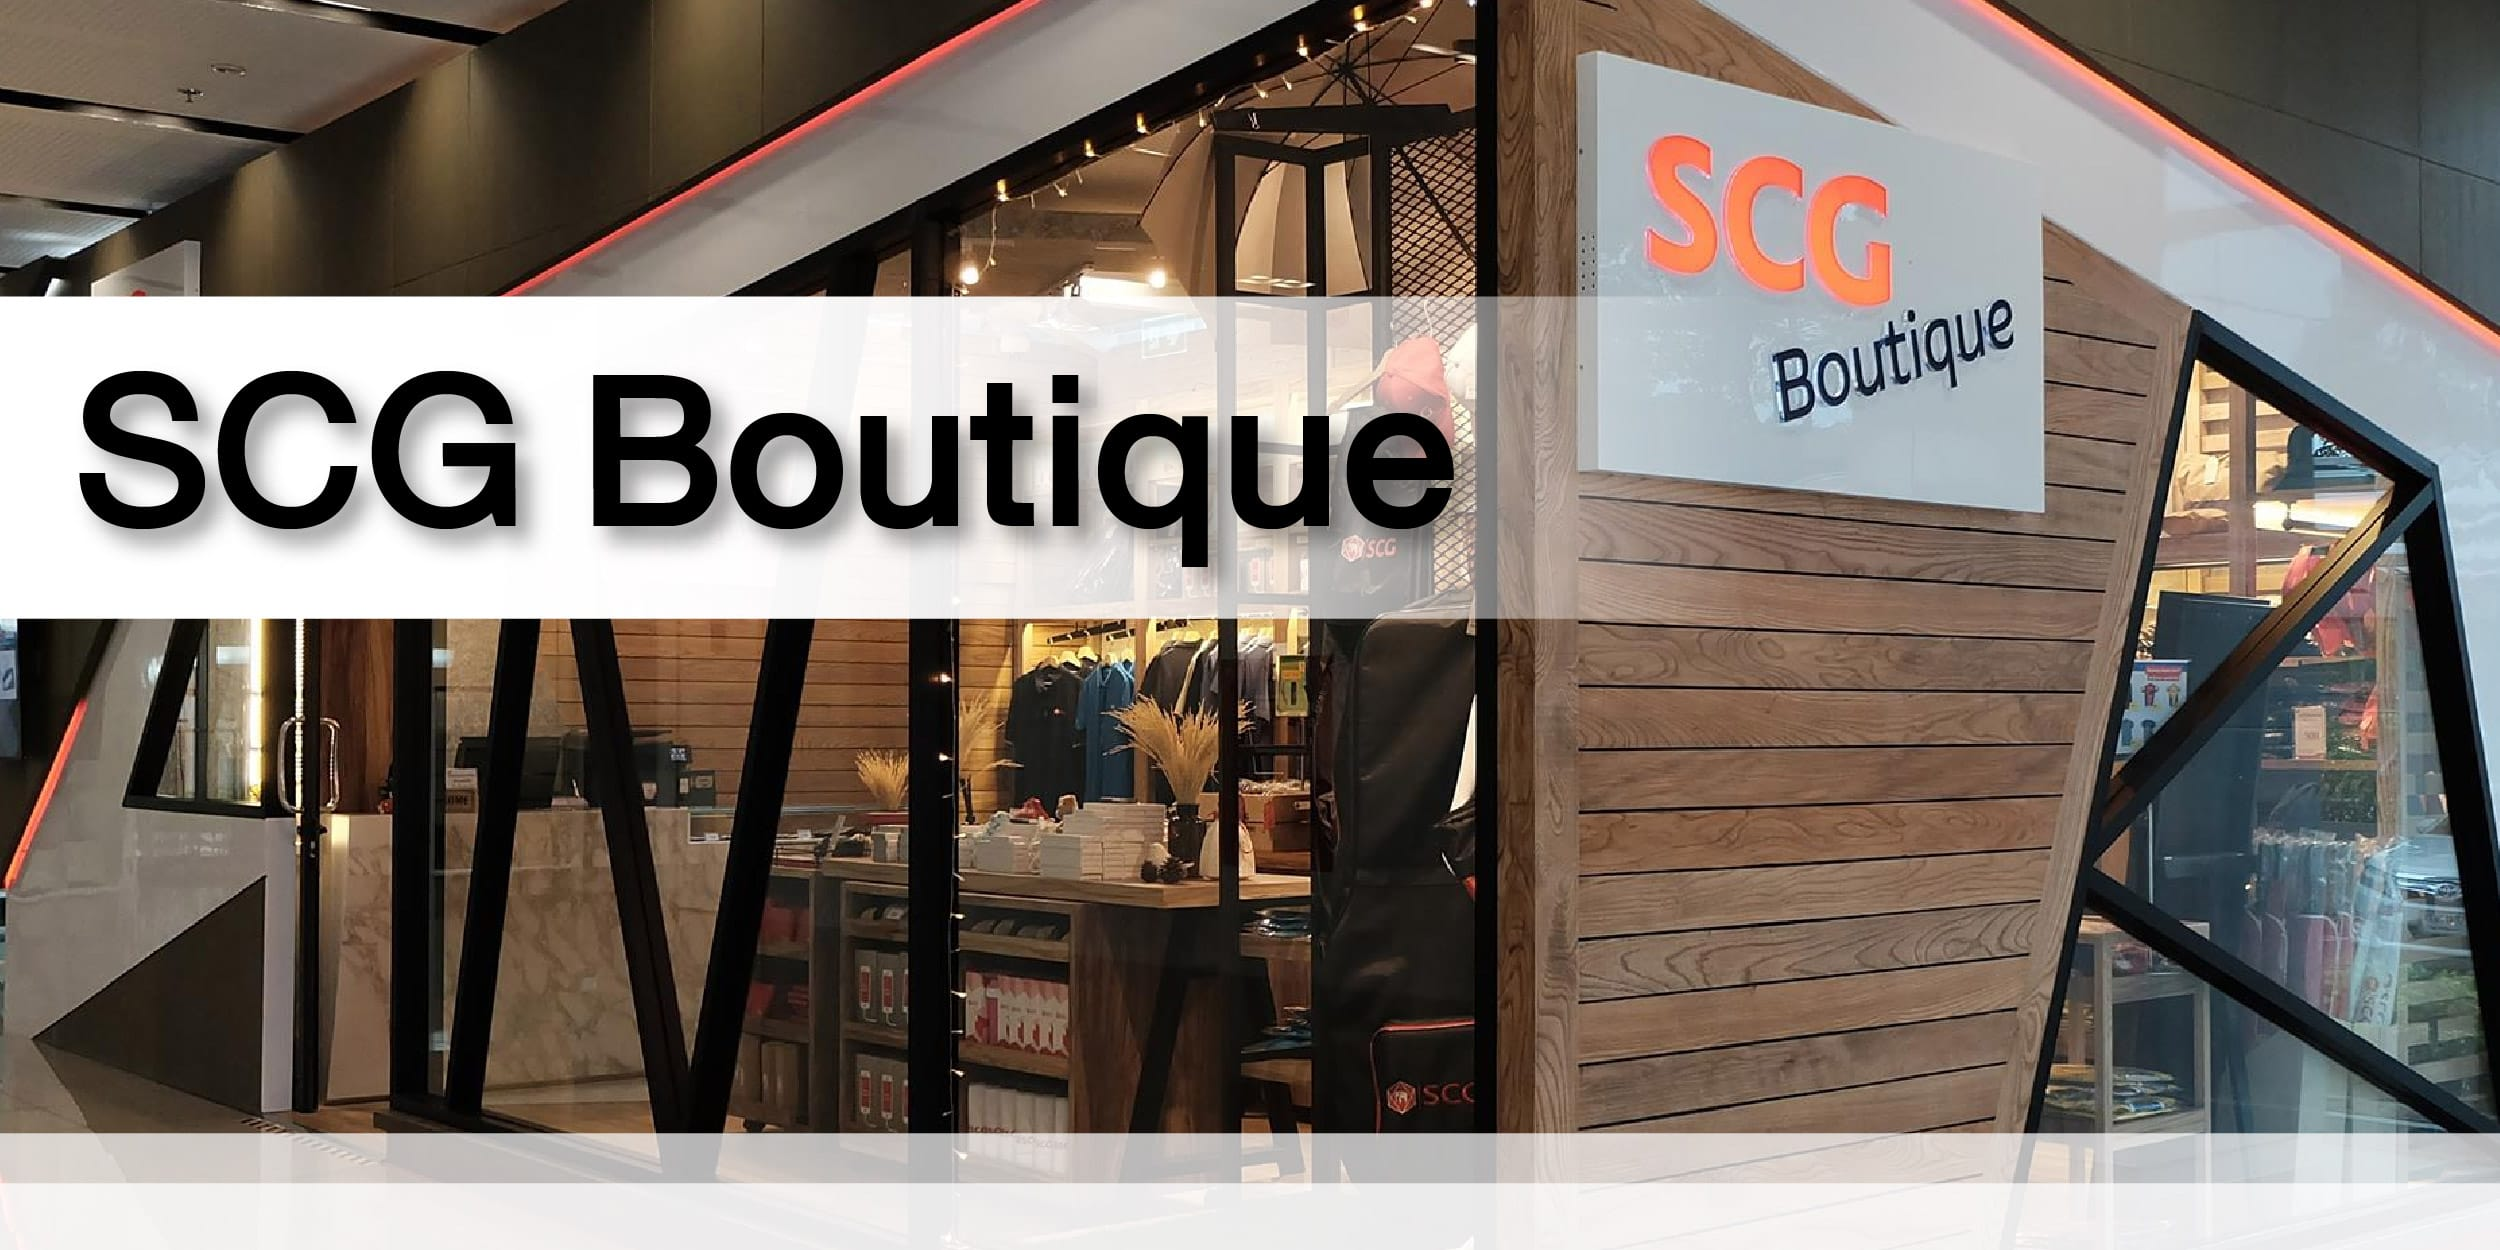 SCG Boutique